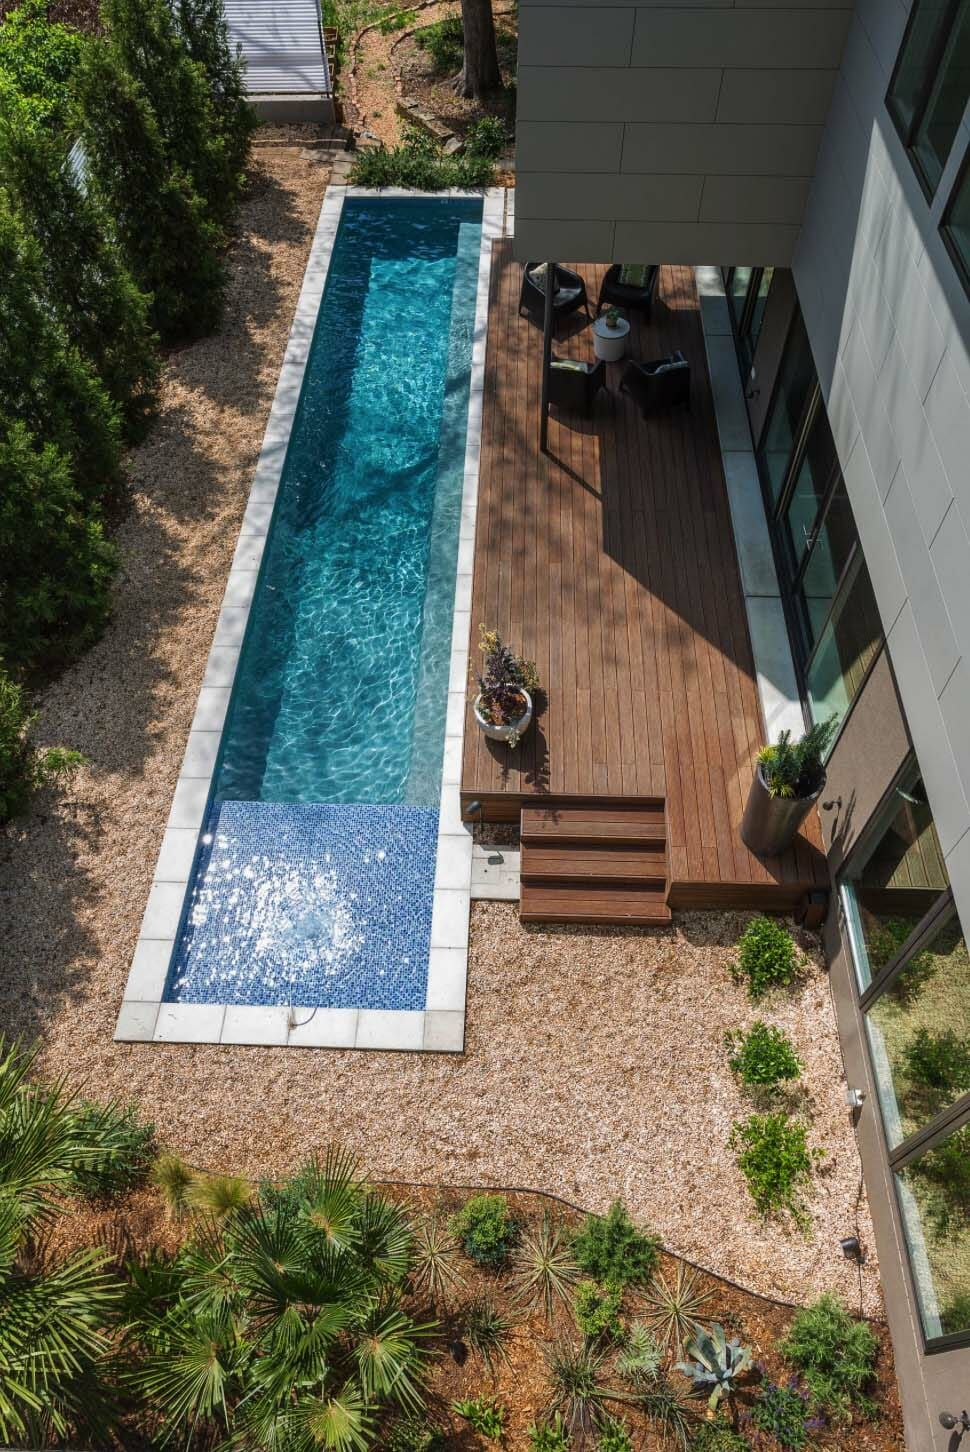 20 Spectacular Outdoor Swimming Pool Ideas With Gorgeous Surroundings Small Backyard Pools Small Pool Design Swimming Pools Backyard